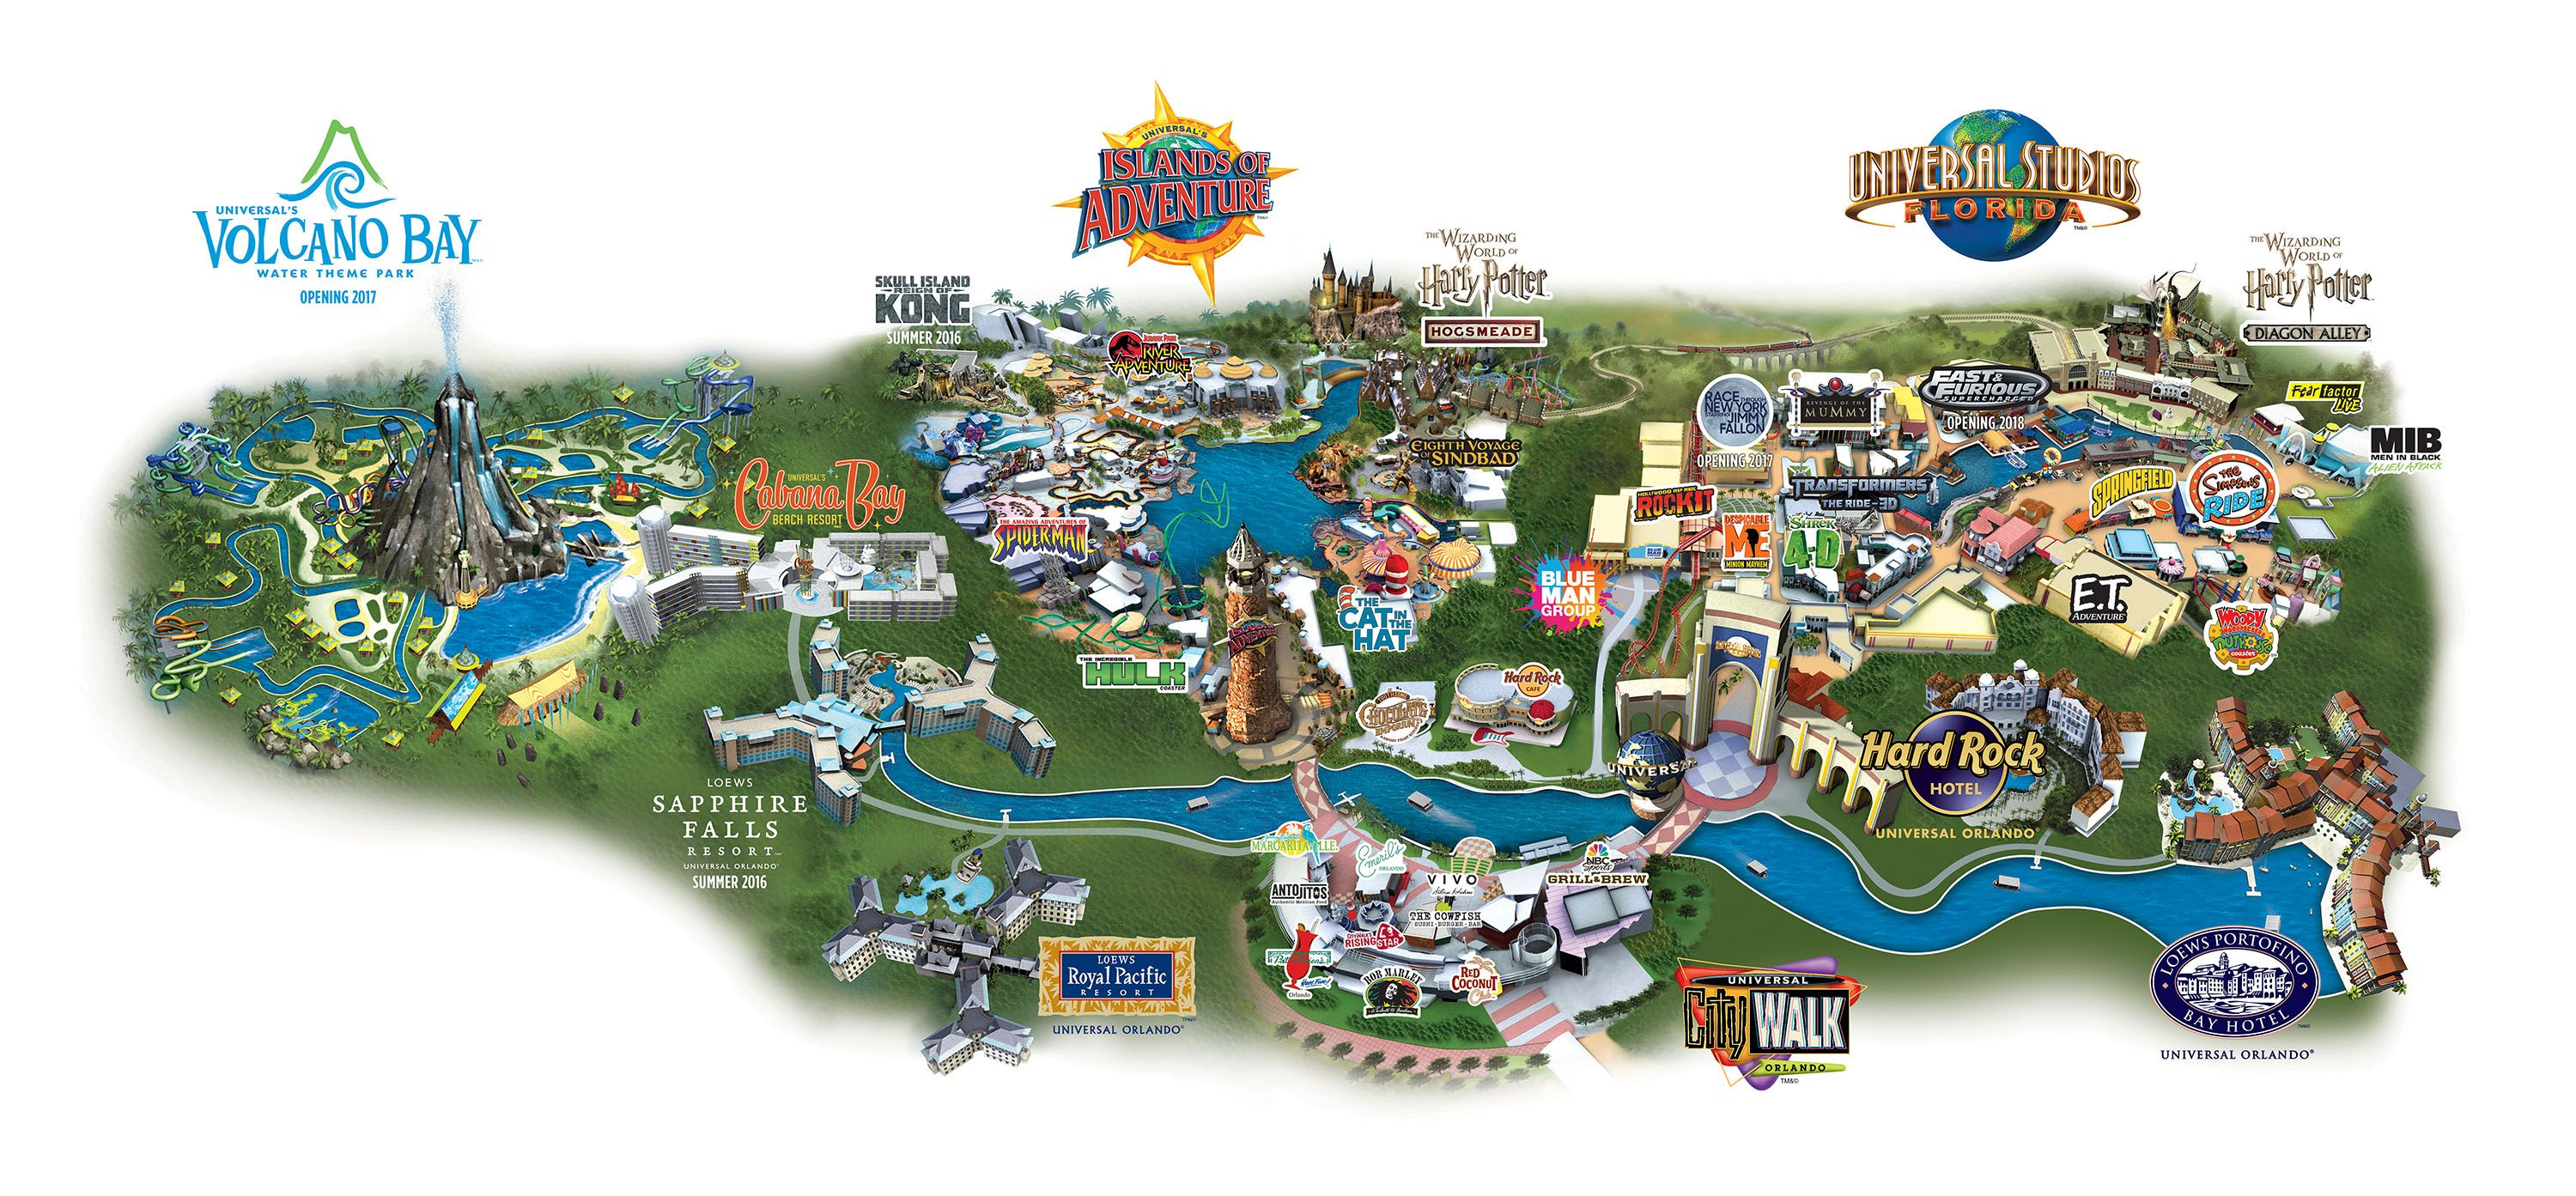 Map of Universal City Walk Universal Studios